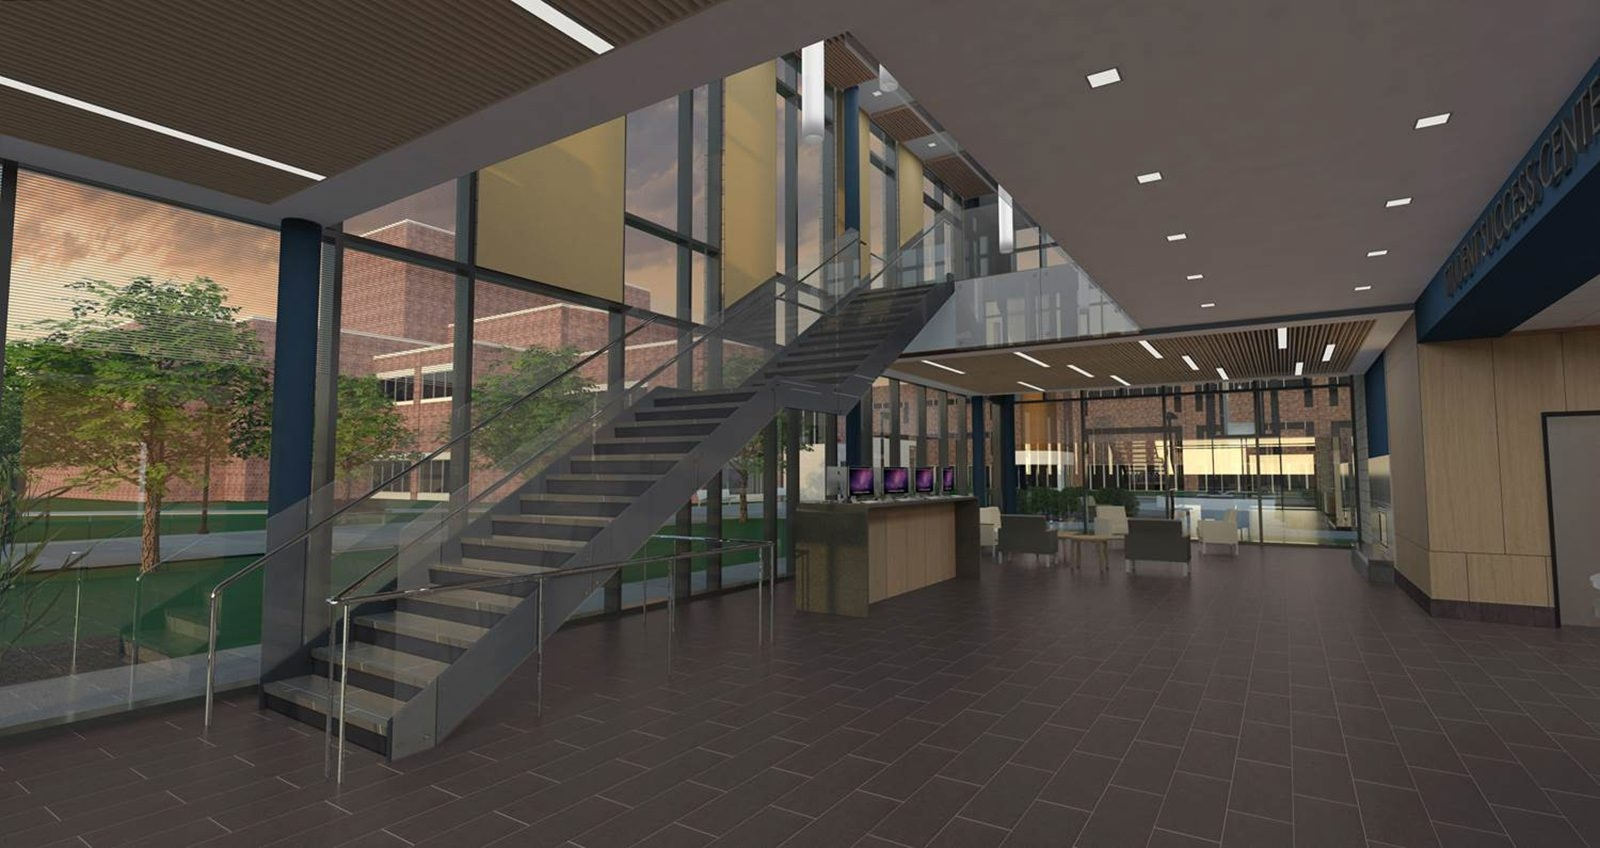 """When completed, the 18,000-square-foot Student Success Center, seen here in a rendering, will become the new """"front door"""" of the Genesee County Community College campus."""